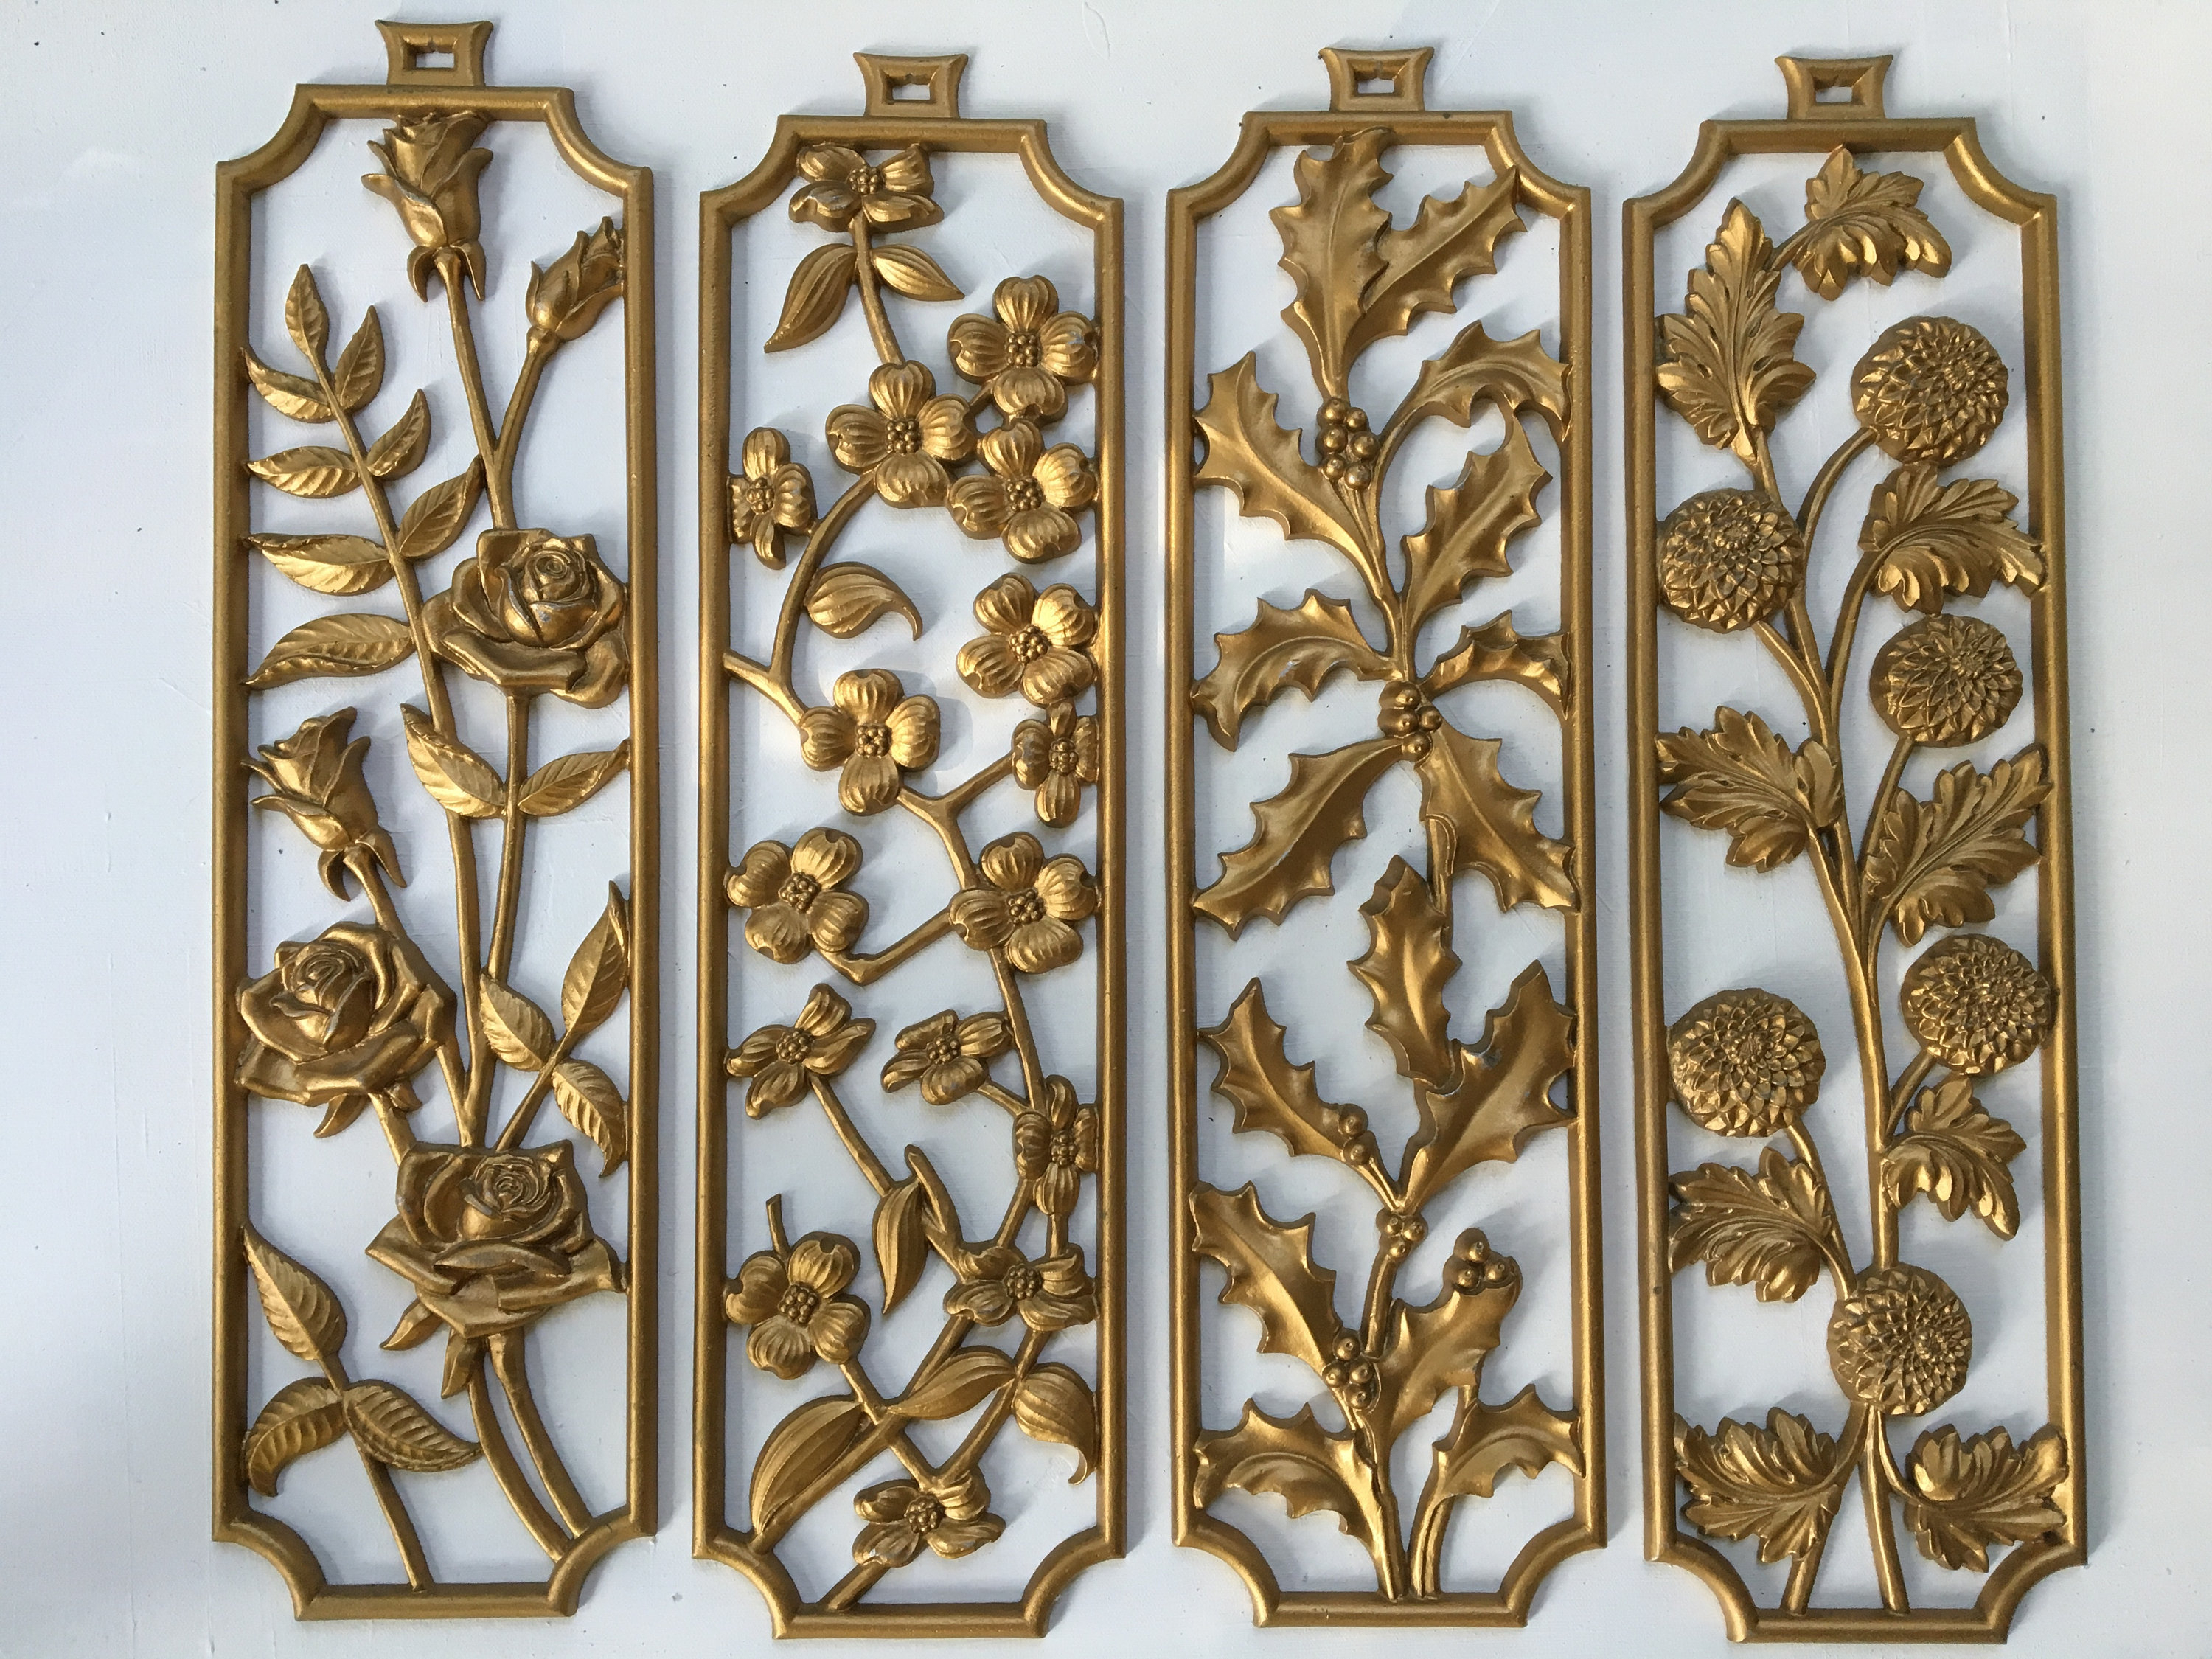 4 Sexton Gold Metal Flower Plaques, Mid Century Modern Wall Decor, Set Of 4 Gold Floral Wall Hangings, Hollywood Regency Intended For 4 Piece Metal Wall Plaque Decor Sets (View 13 of 30)